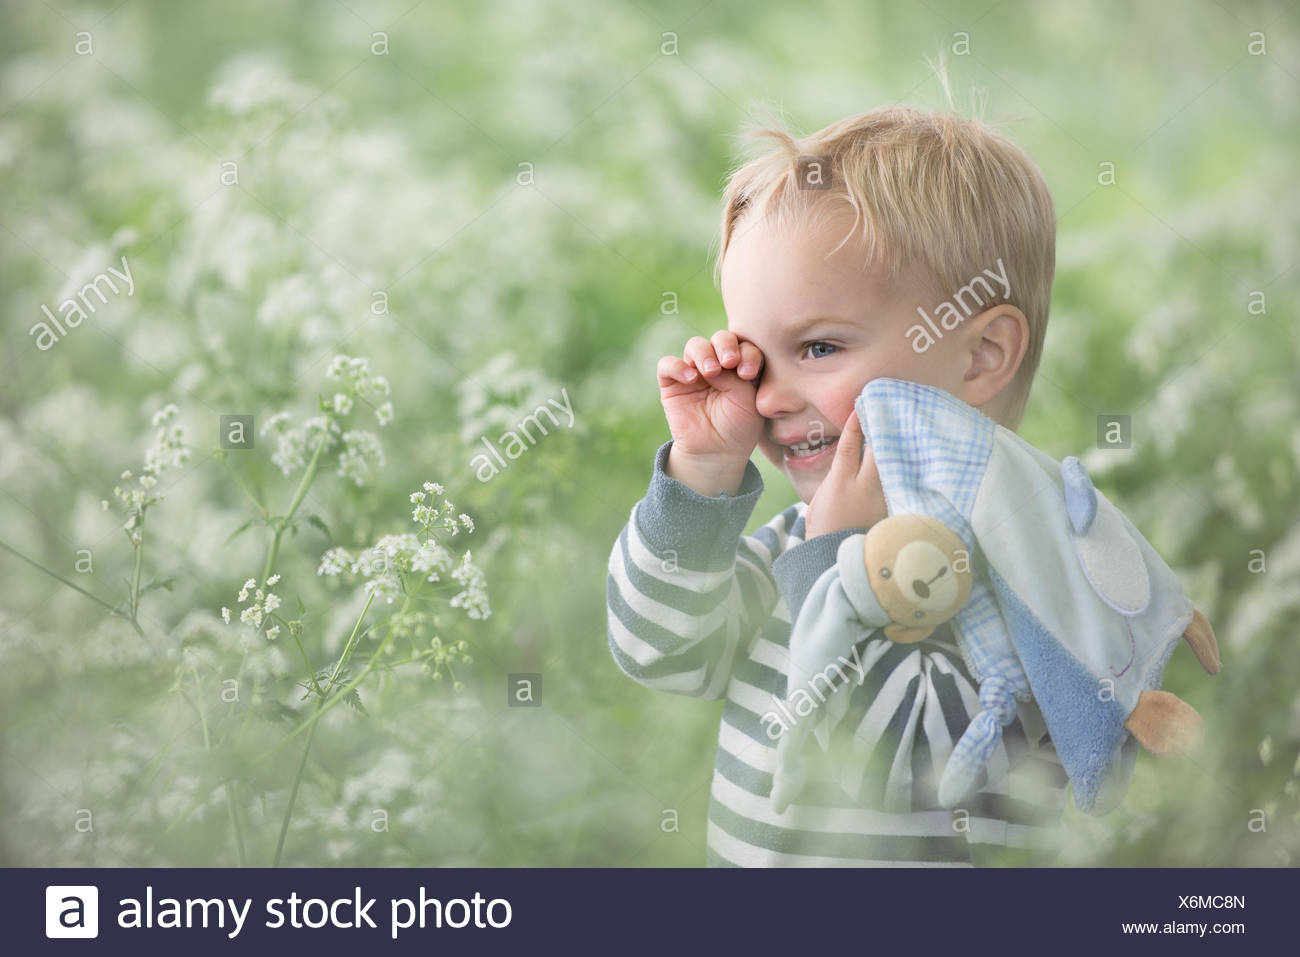 Tired toddler standing in a field rubbing his eyes - Stock Image